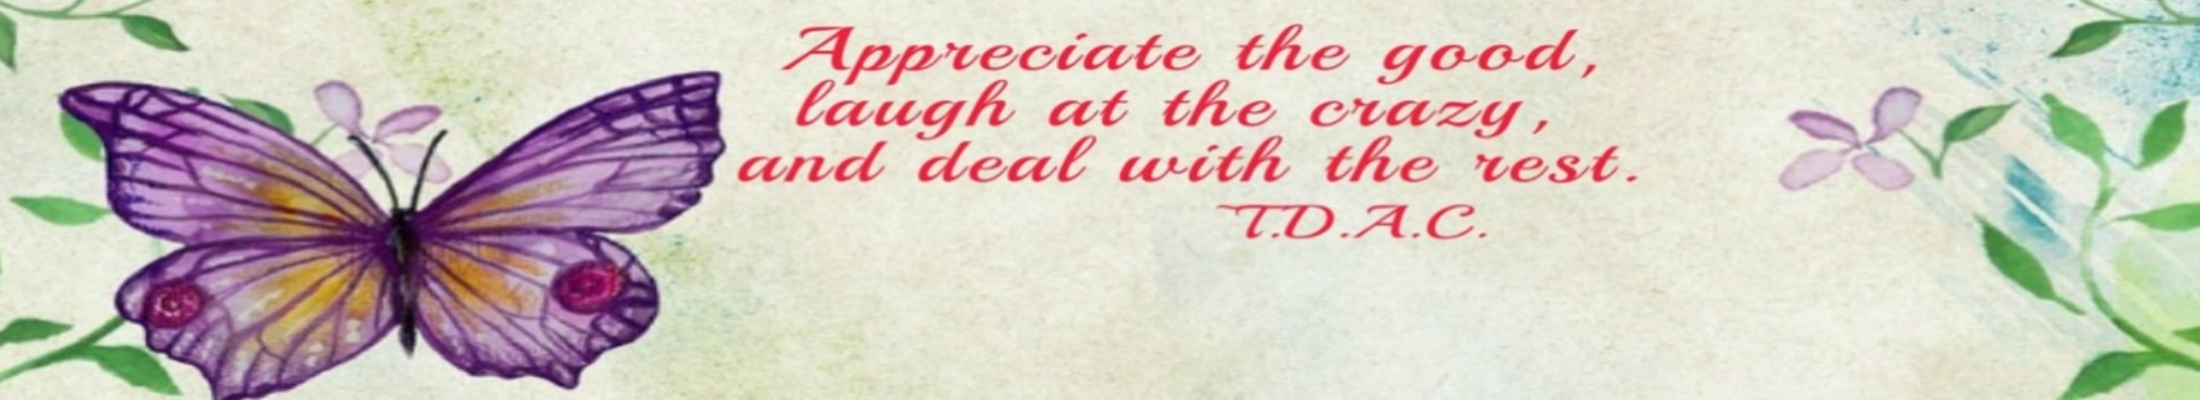 Appreciate the good,laugh at the crazy, and deal with the rest. -T.D.A.C.